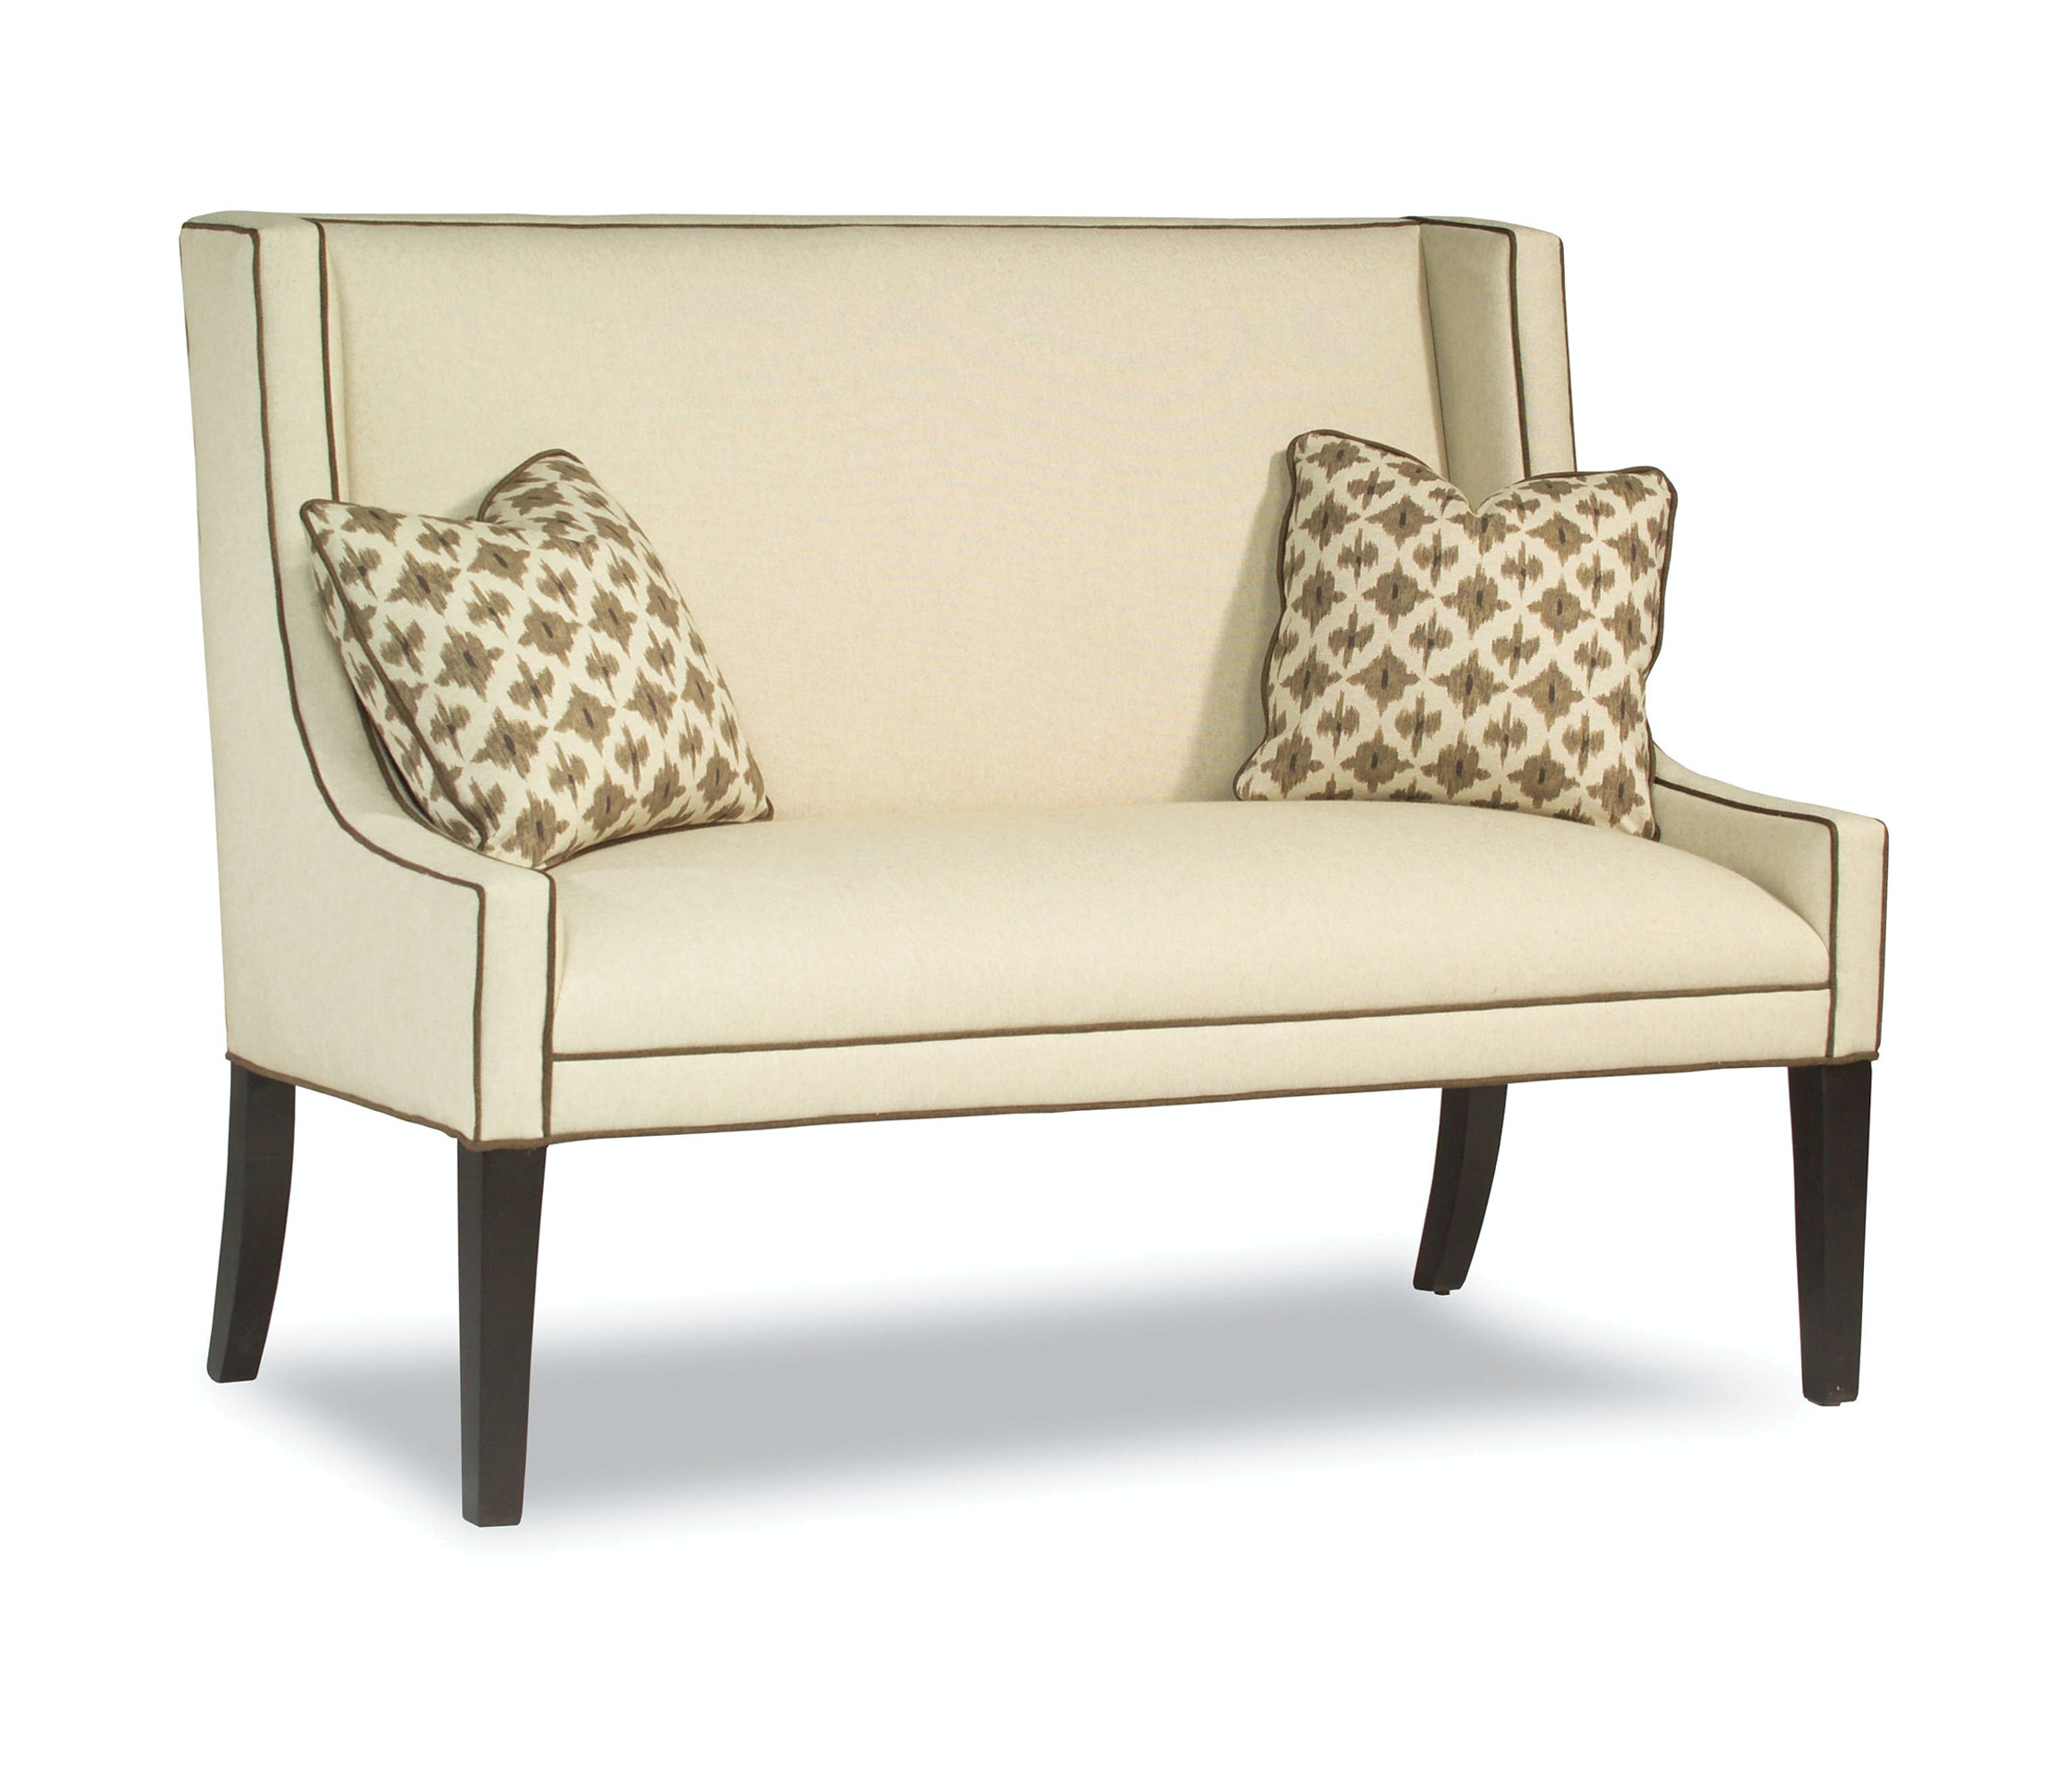 Taylor King Furniture Living Room Baldwin Settee K302